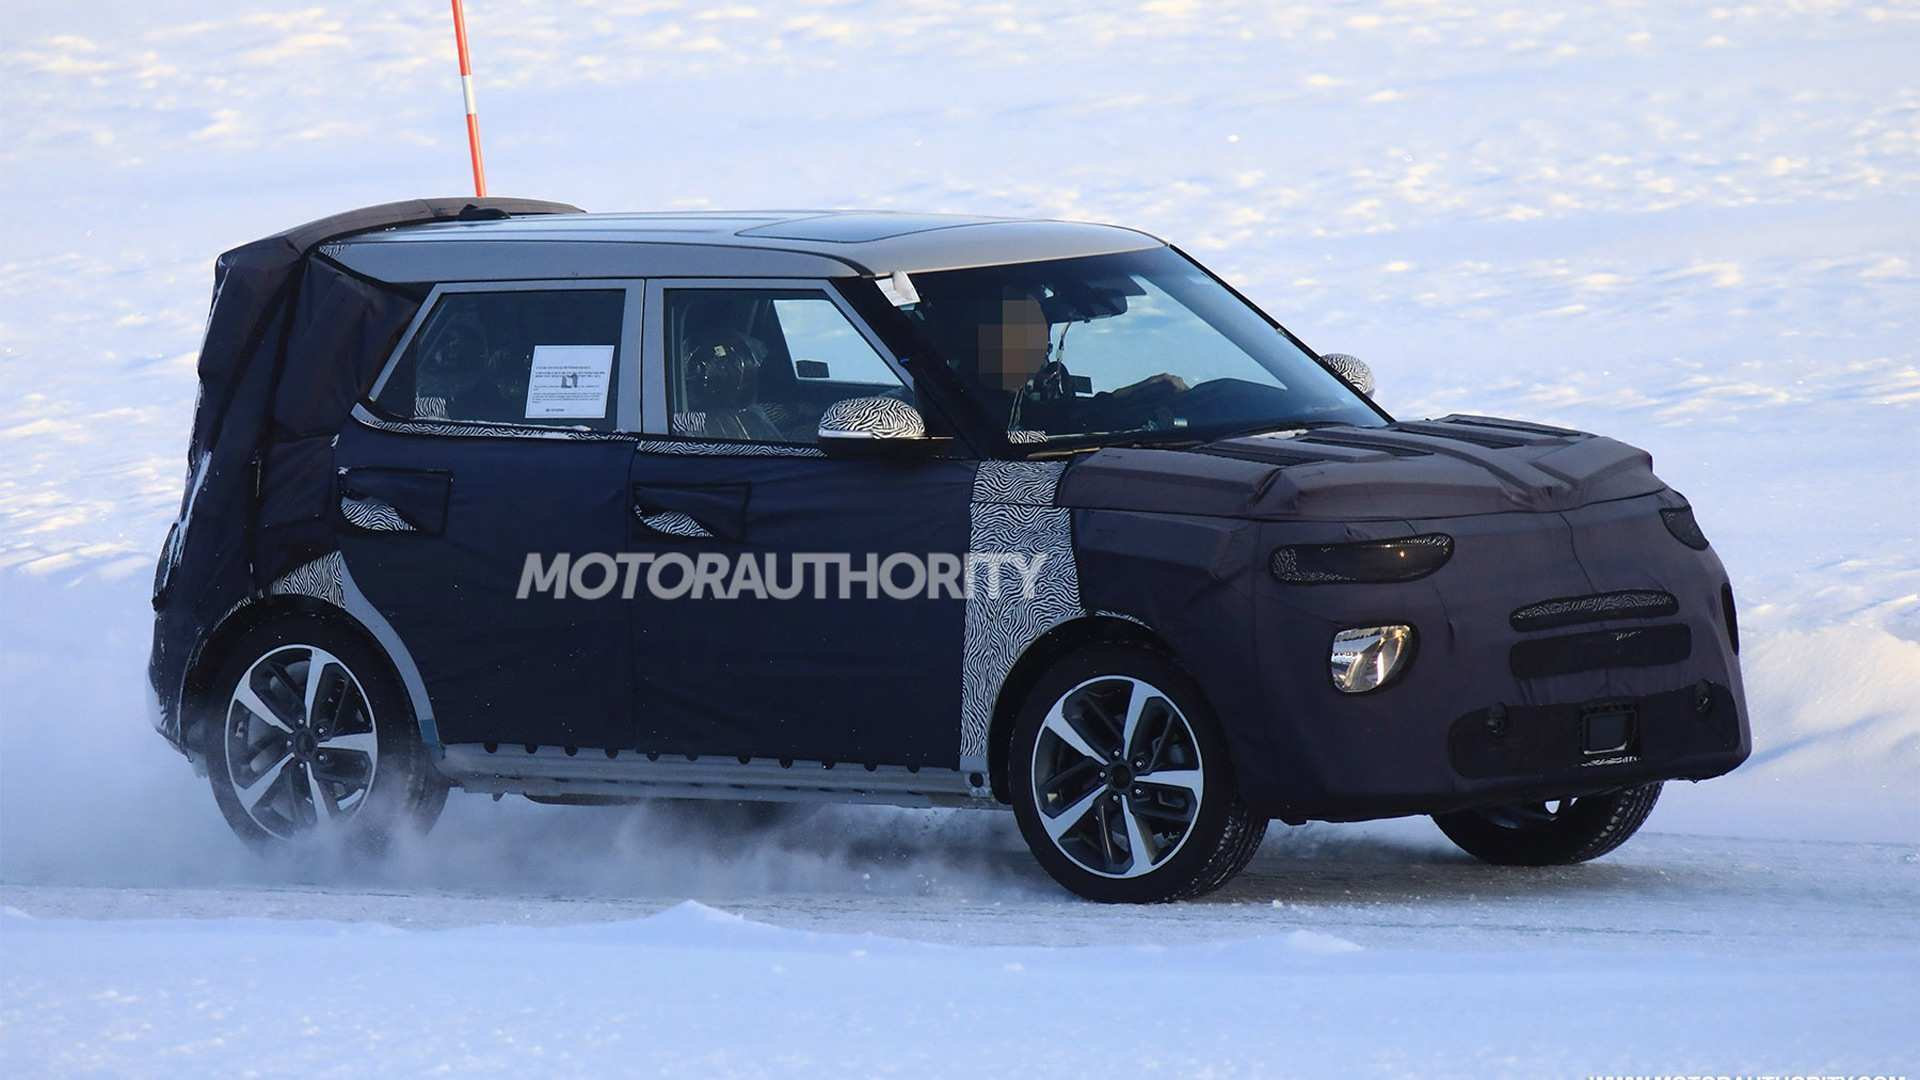 17 All New Kia Soul 2020 New Concept Performance with Kia Soul 2020 New Concept